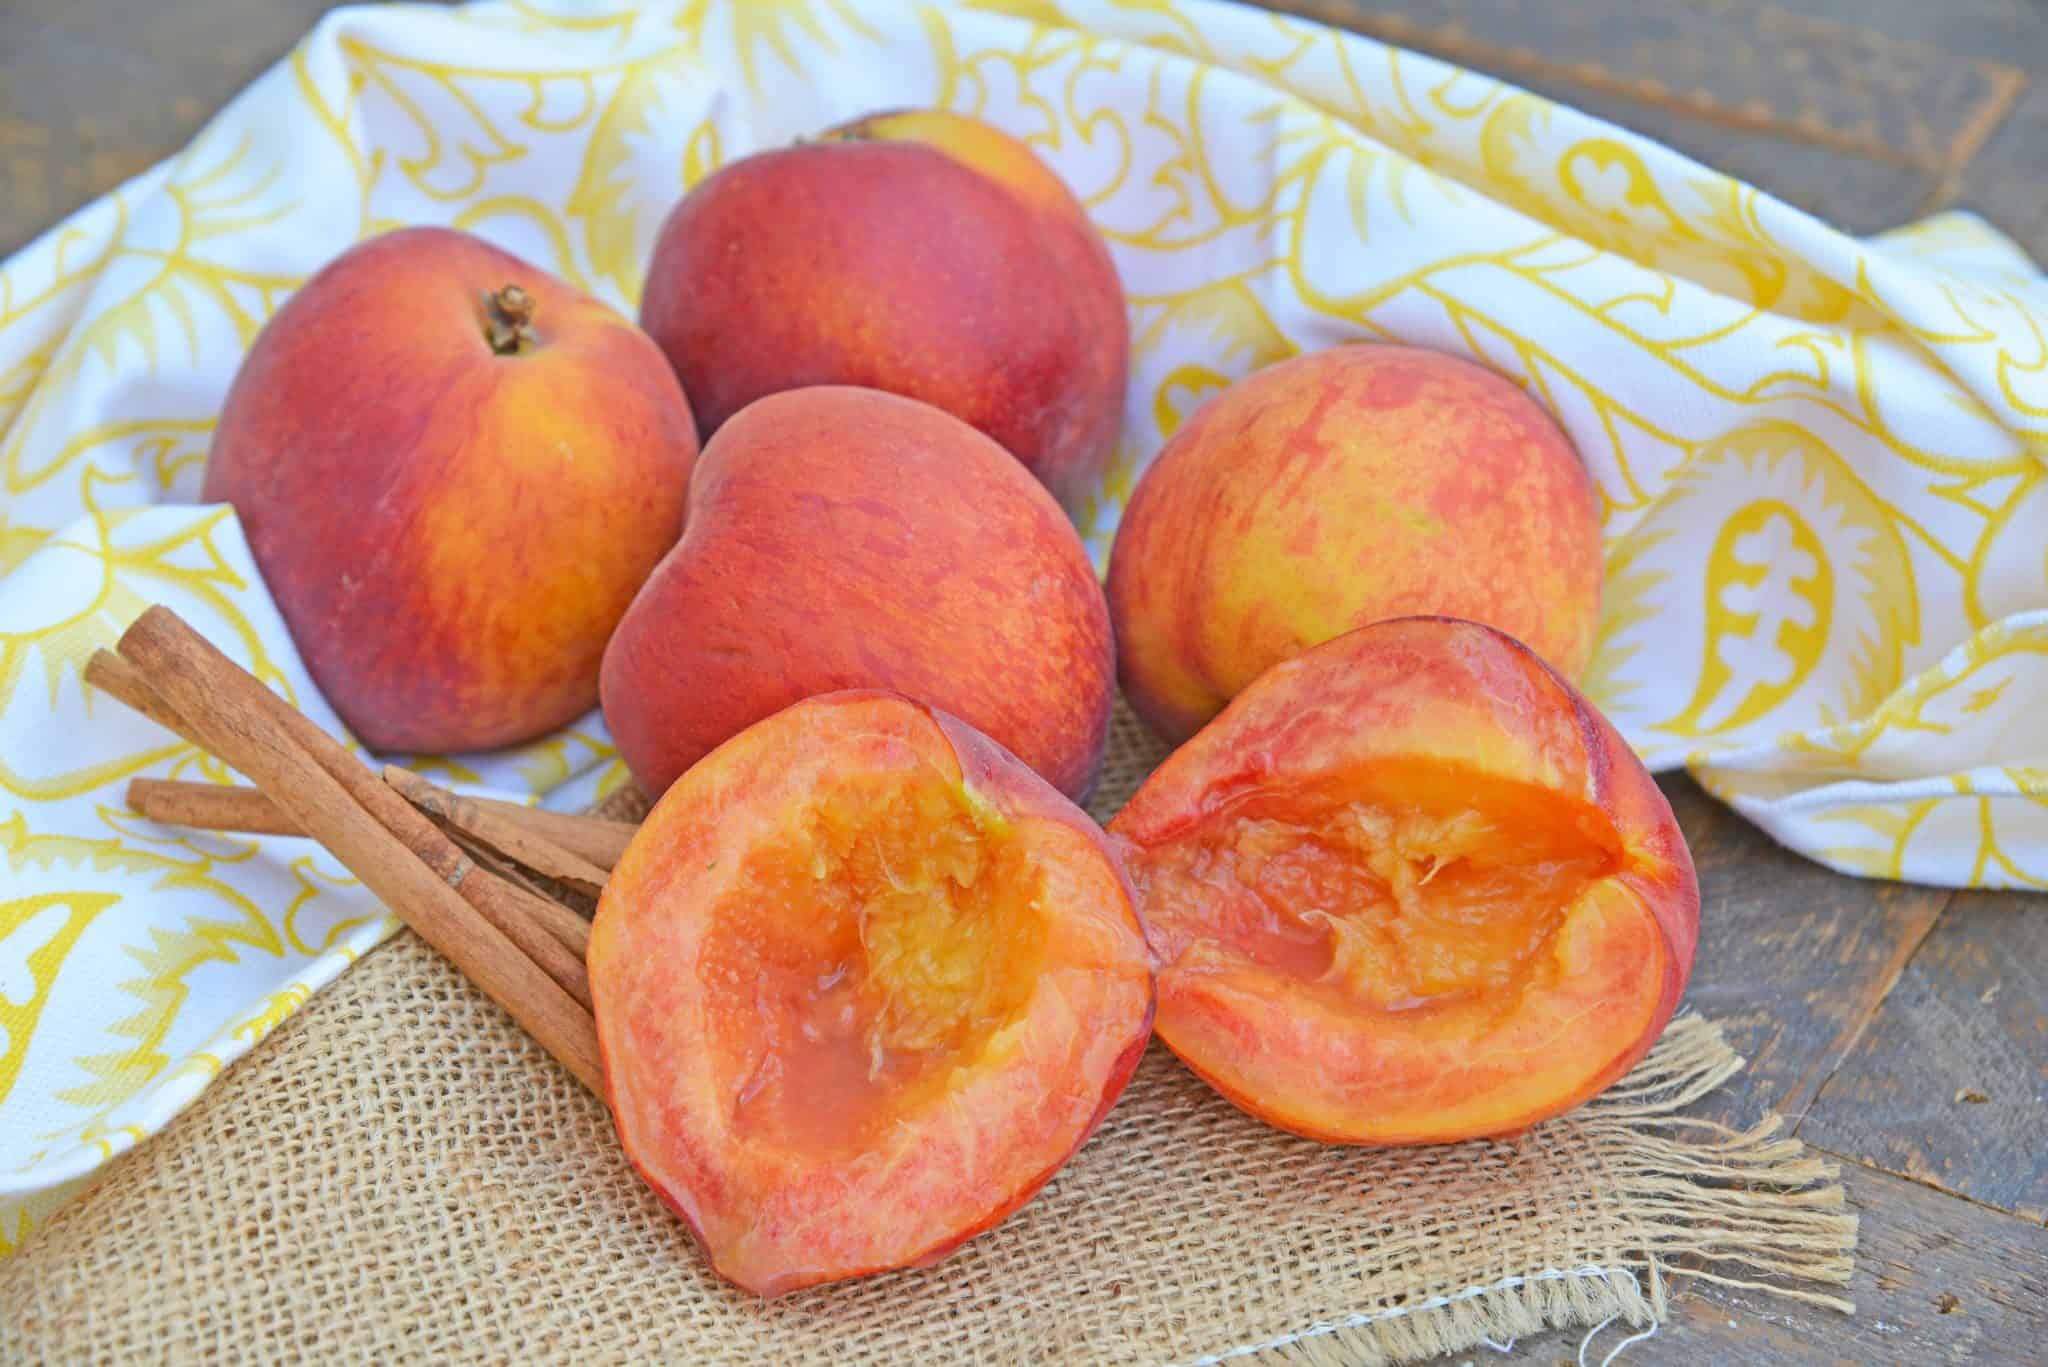 Grilled Peaches basted with cinnamon brown sugar and butter are the ultimate summer dessert idea. Add vanilla ice cream and fresh raspberries for dessert perfection! #grilledpeaches www.savoryexperiments.com